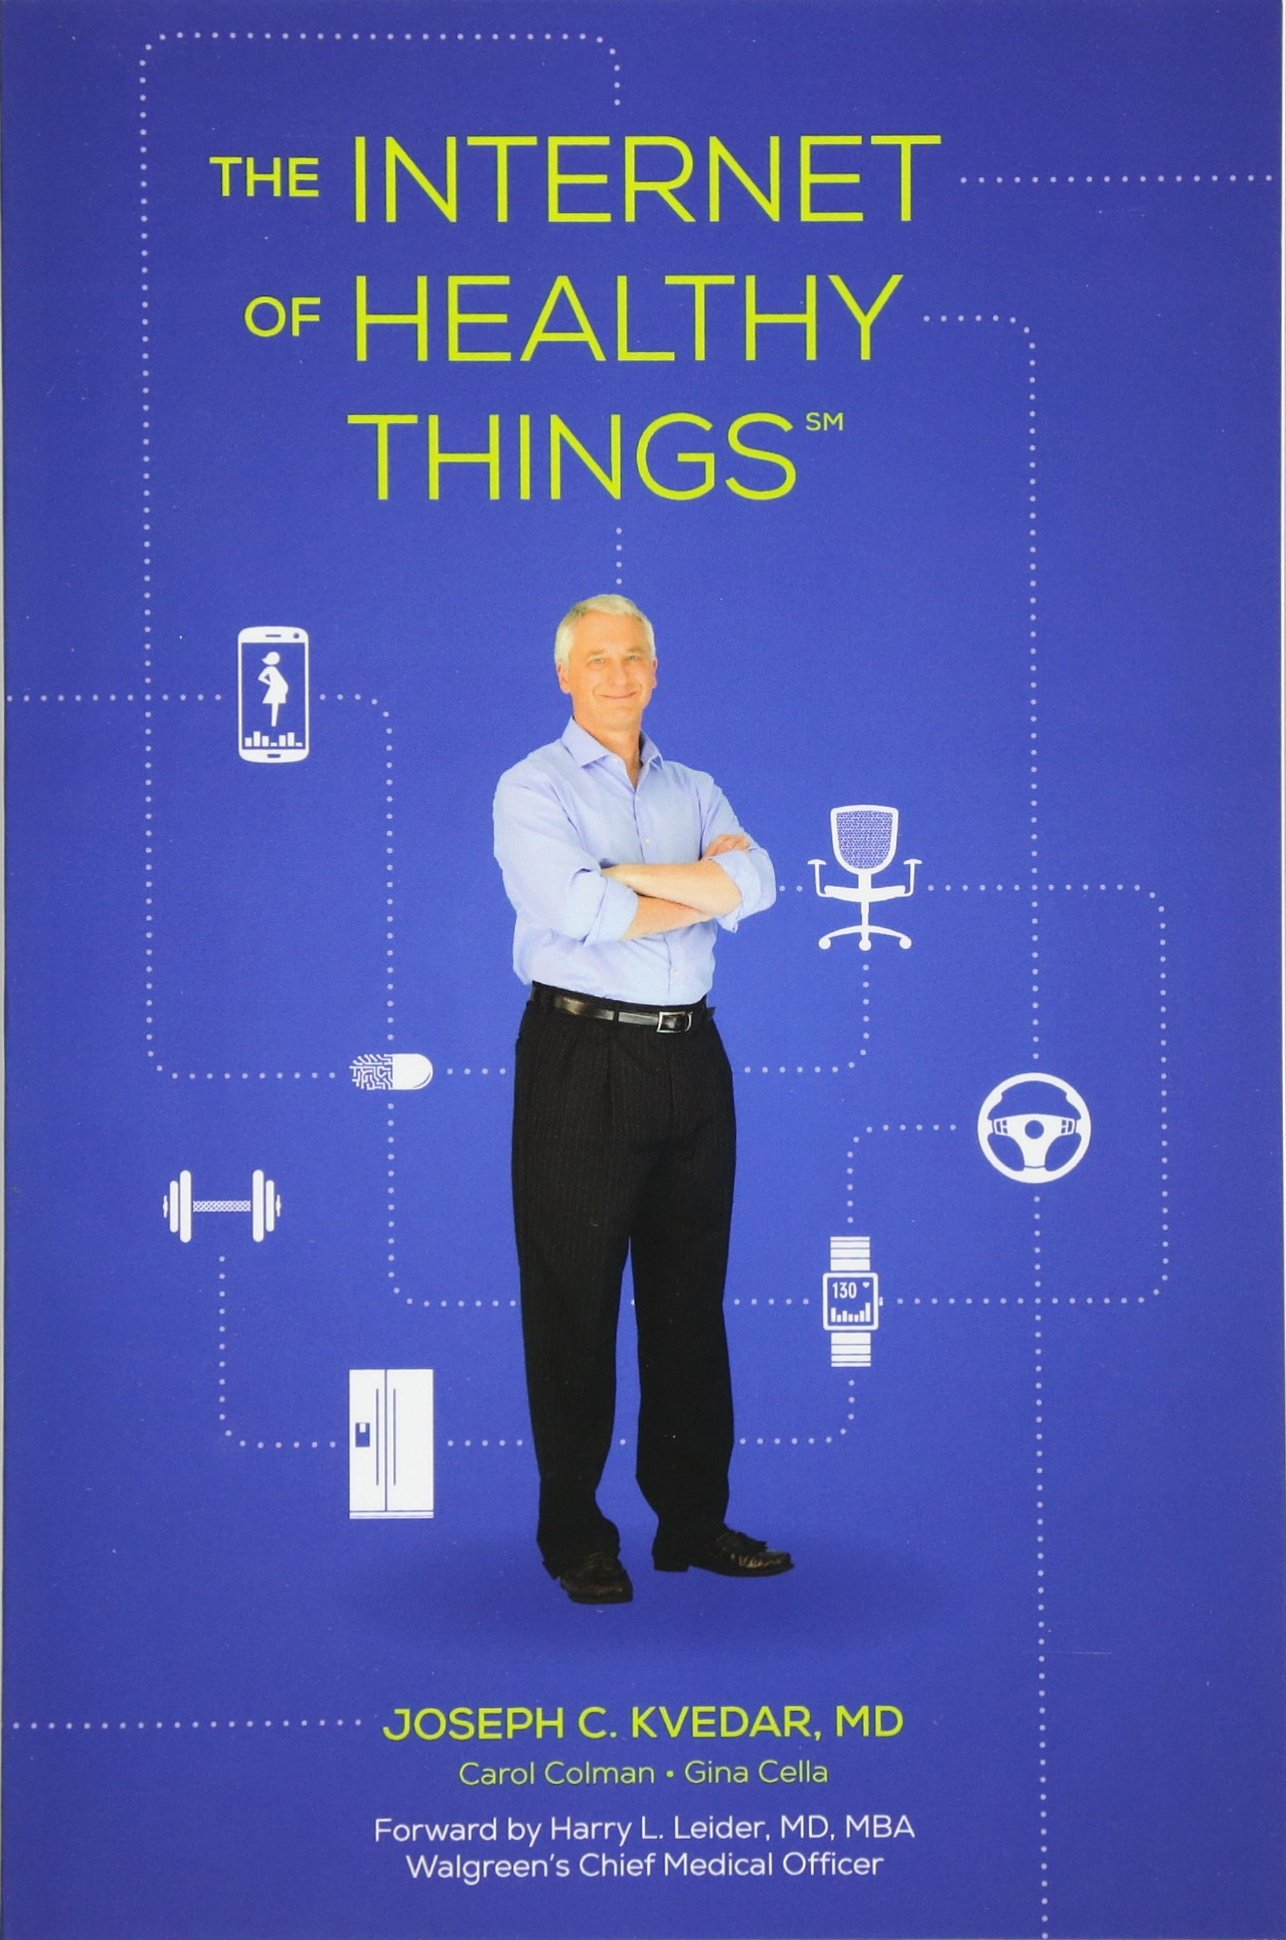 The Internet Of Healthy Things: Joseph C Kvedar Md, Mb, Harry L Leider  Md, Carol Colman, Gina Cella: 9780692534571: Amazon: Books